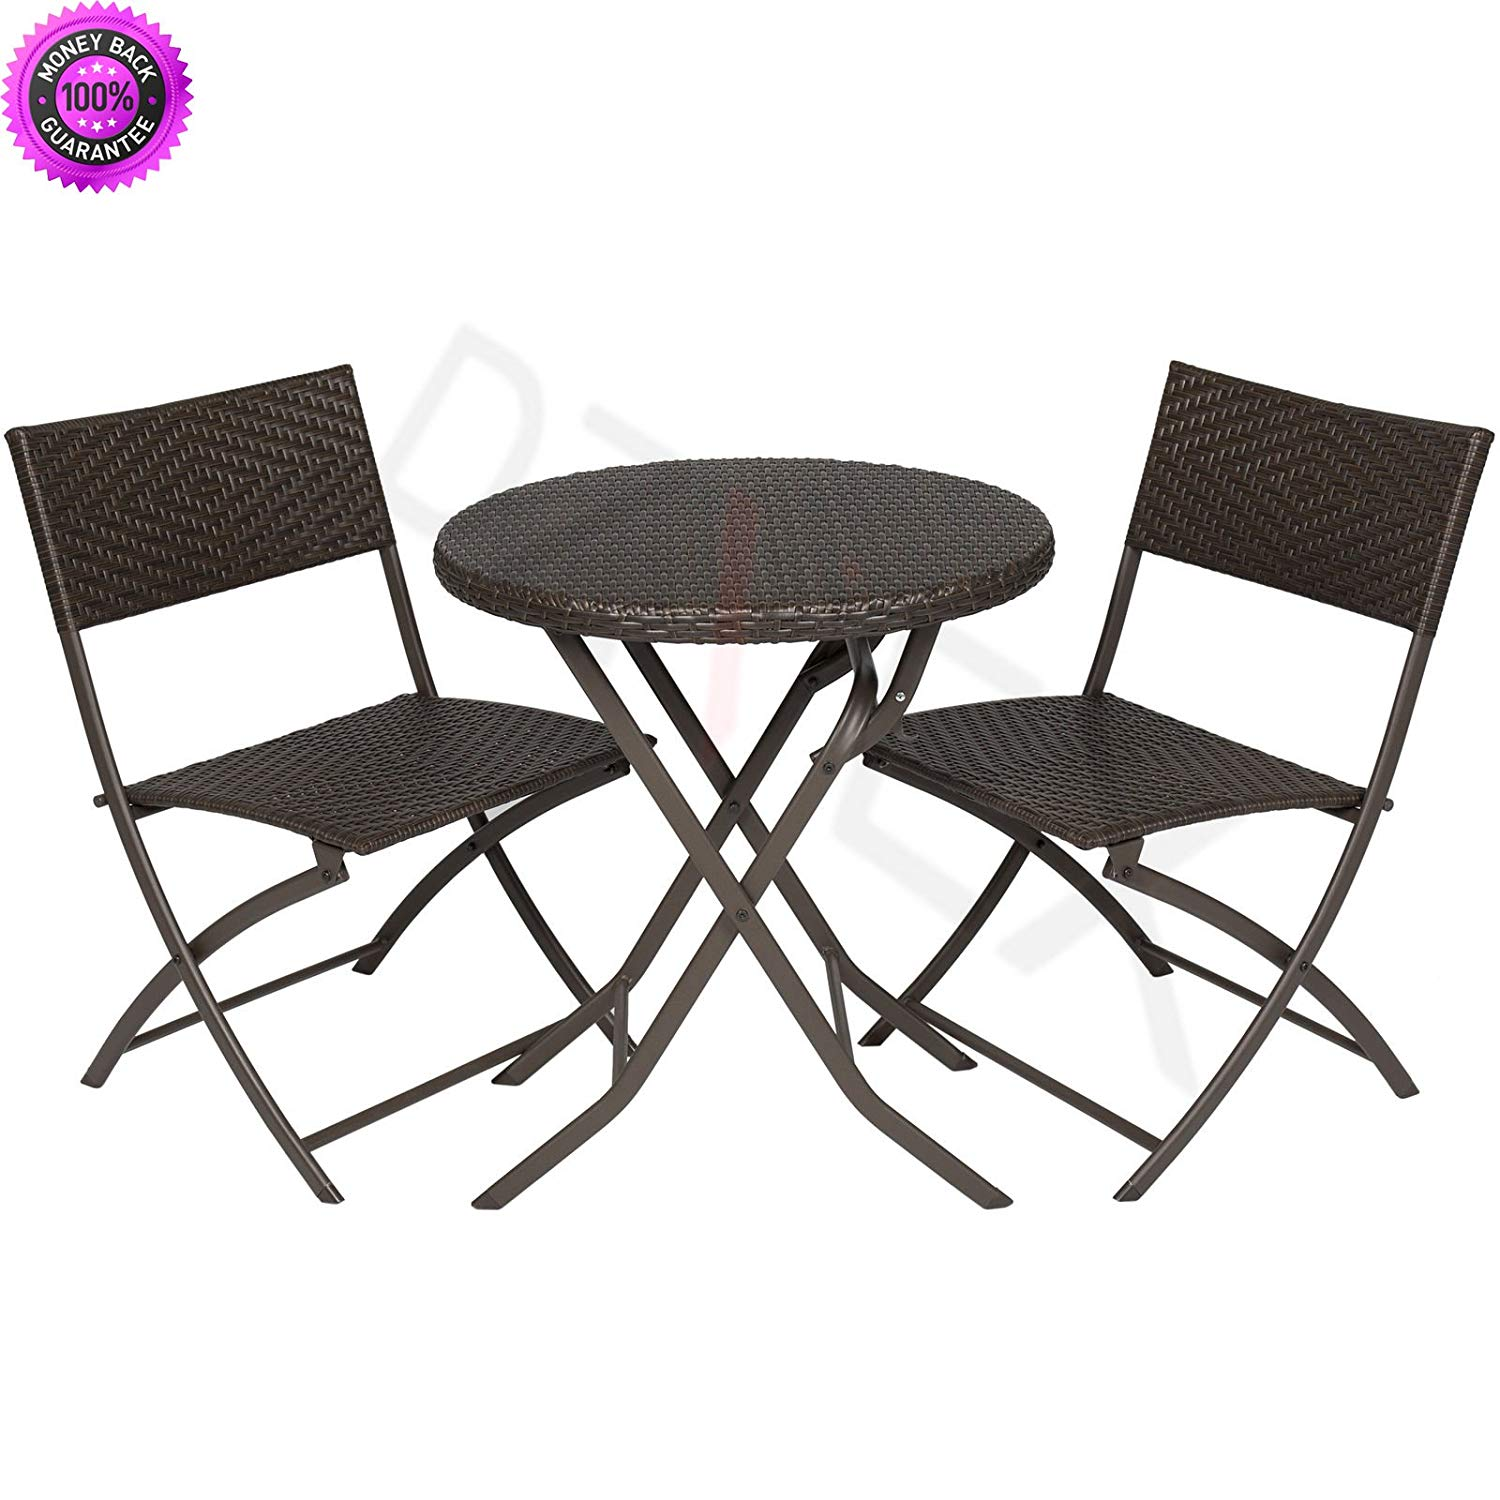 cheap lawn furniture lowes find lawn